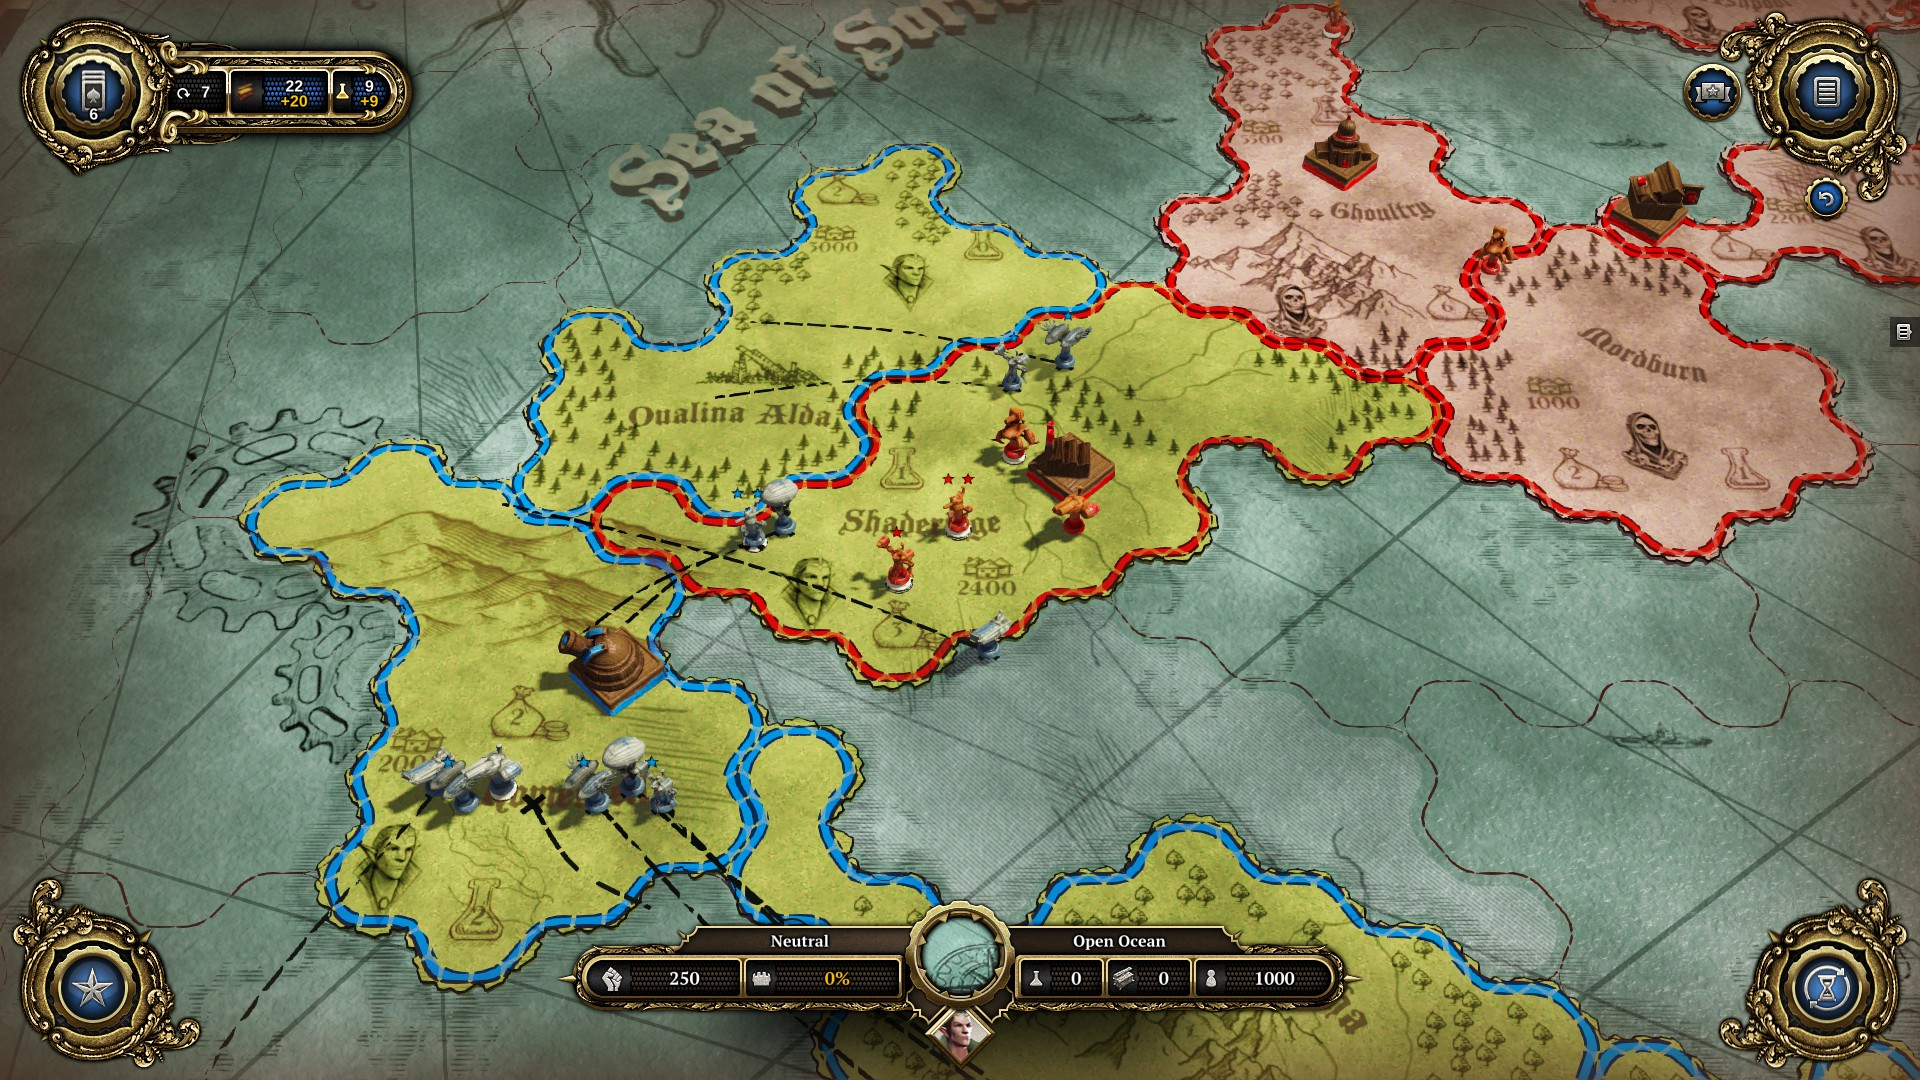 Divinity dragon commander review pc the average gamer divinity dragon commander strategic map gumiabroncs Images